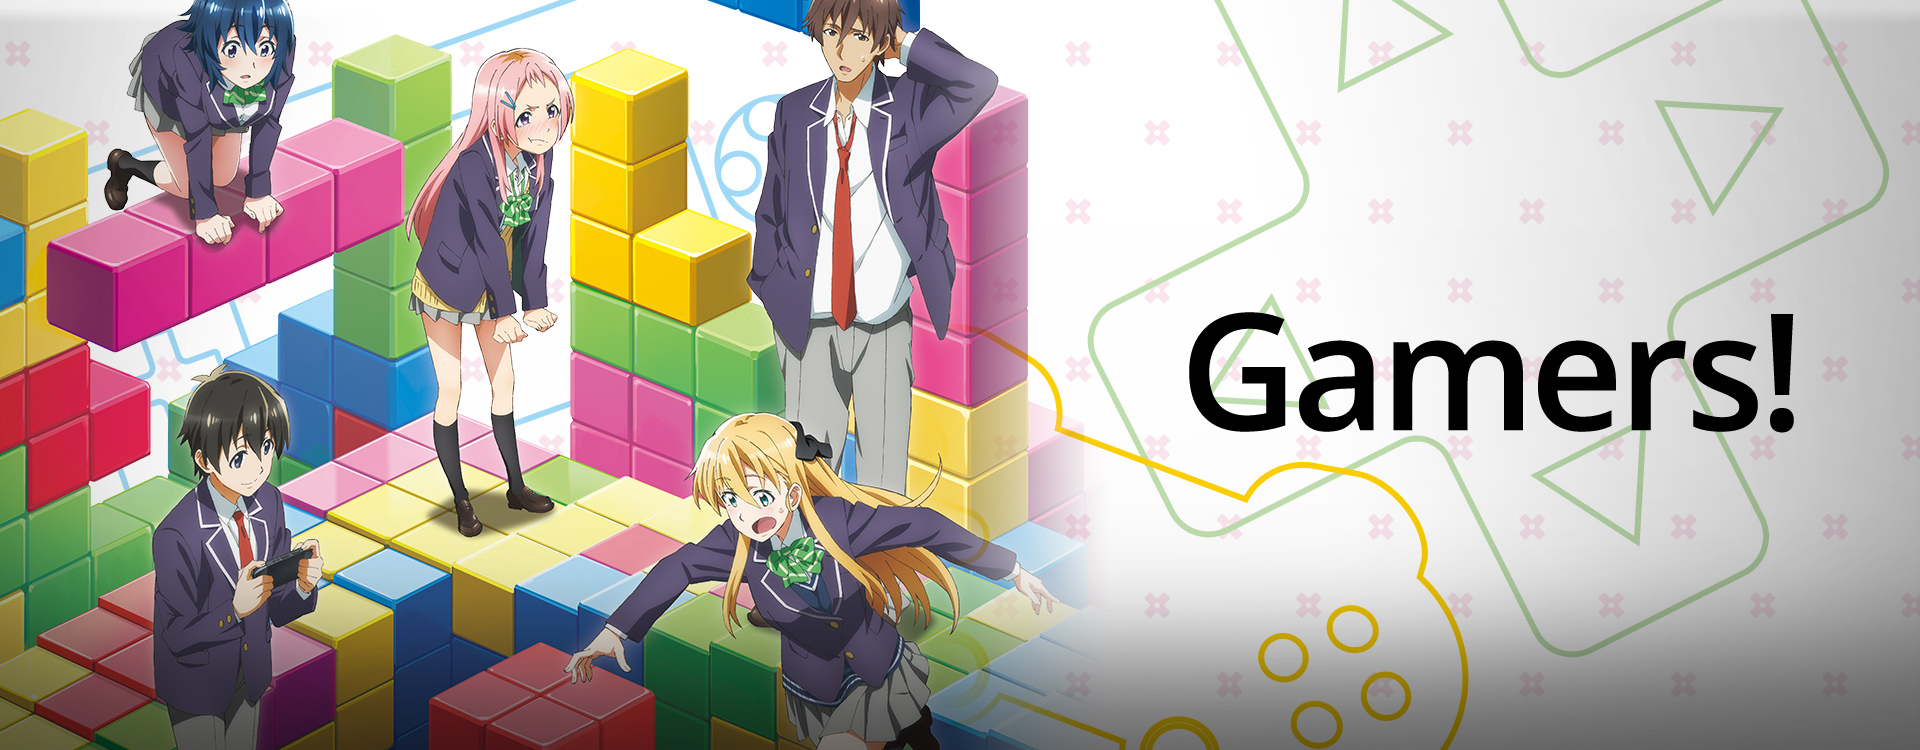 Watch Gamers Episodes Sub Dub Comedy Romance Slice Of Life